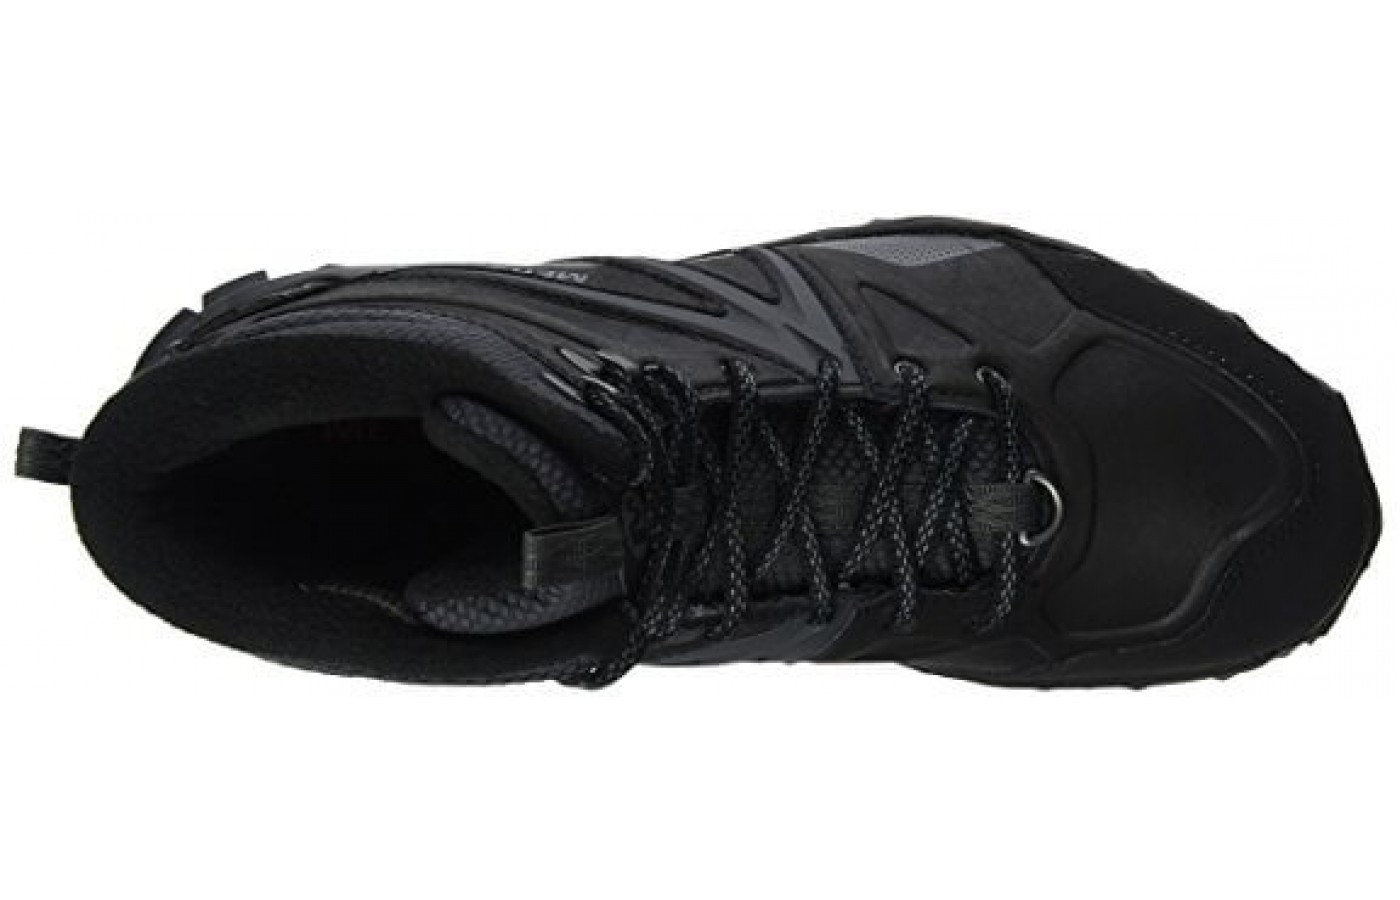 The Merrell Capra Glacial Ice lacing system